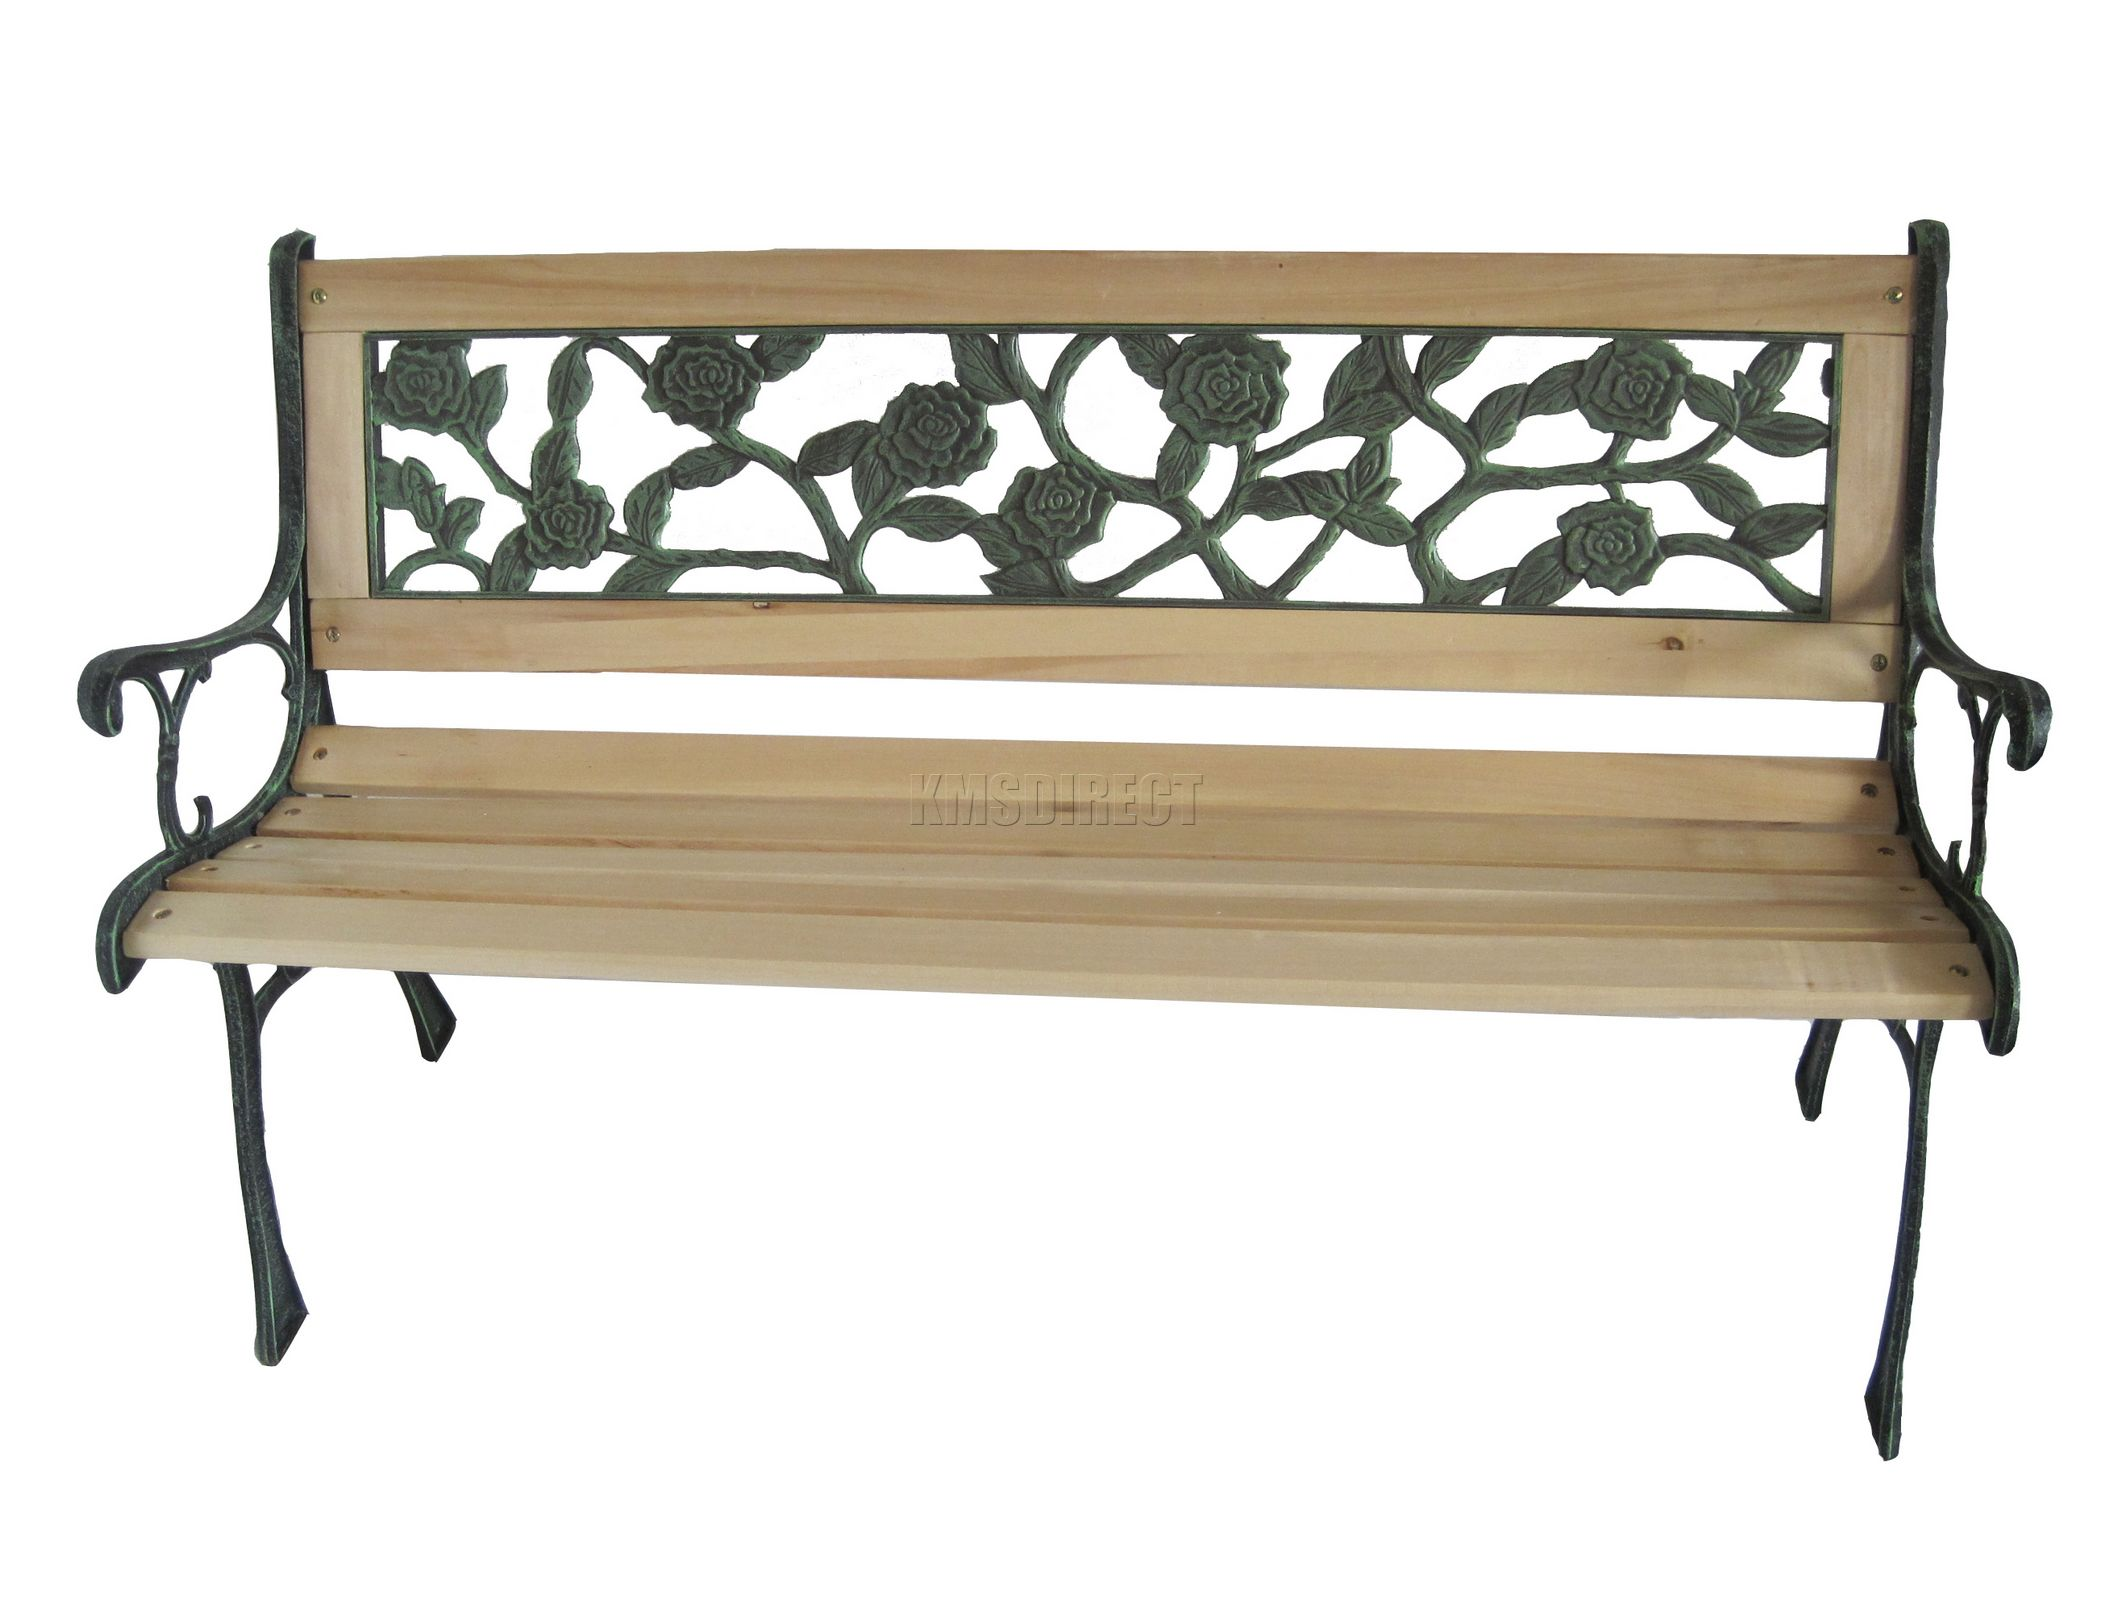 KMS 3 Seater Outdoor Wooden Garden Bench with. KMS 3 Seater Outdoor Wooden Garden Bench with Cast Iron Legs Park